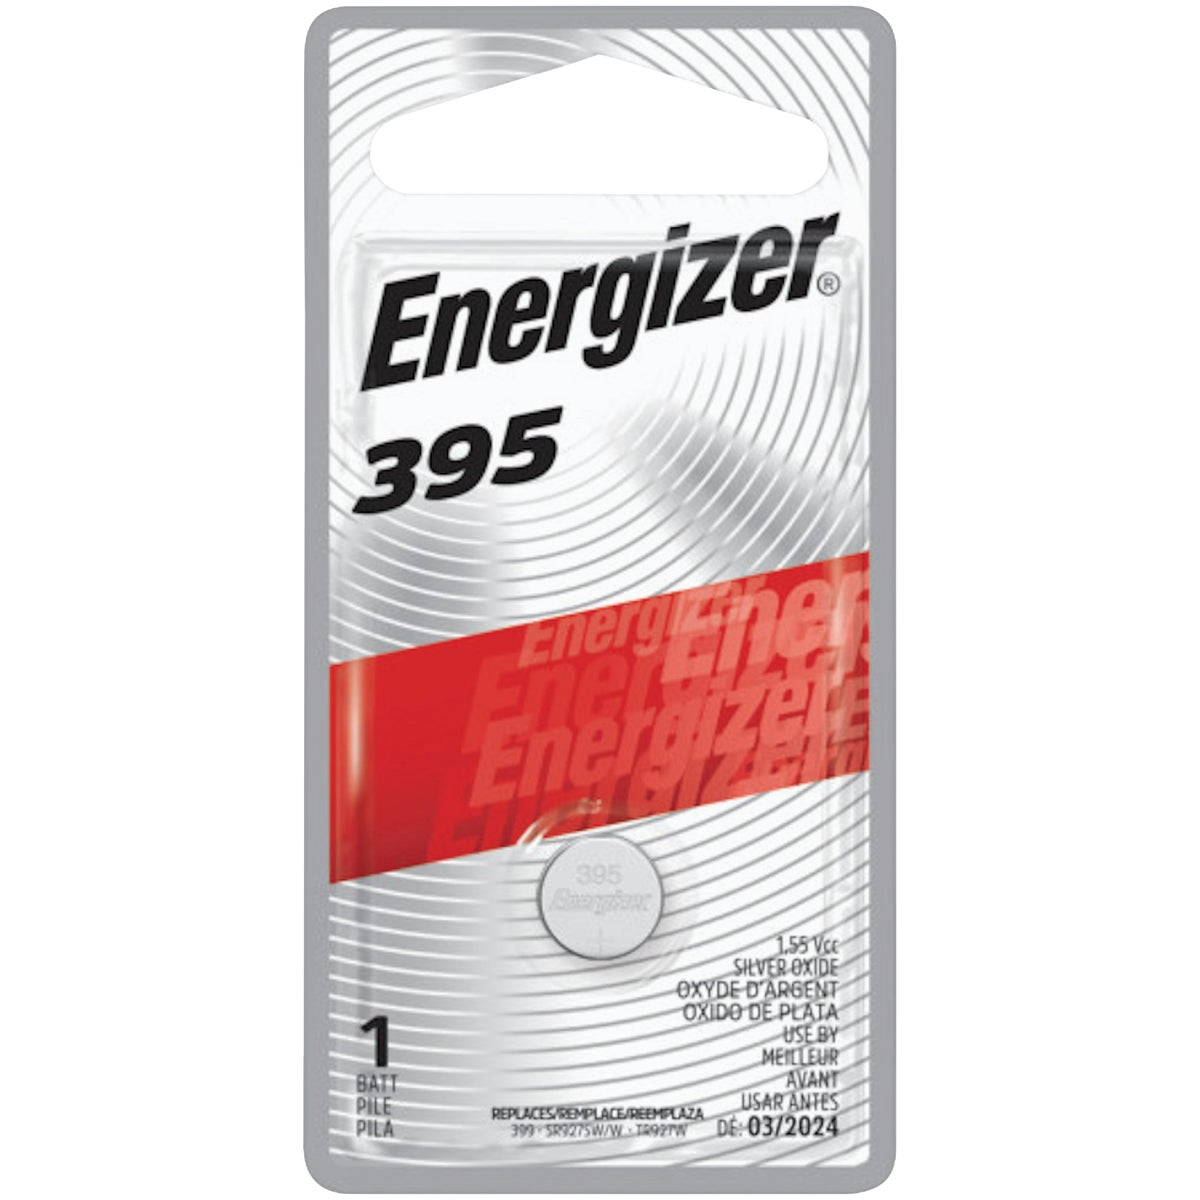 1.5V WATCH BATTERY - 395BPZ by Energizer